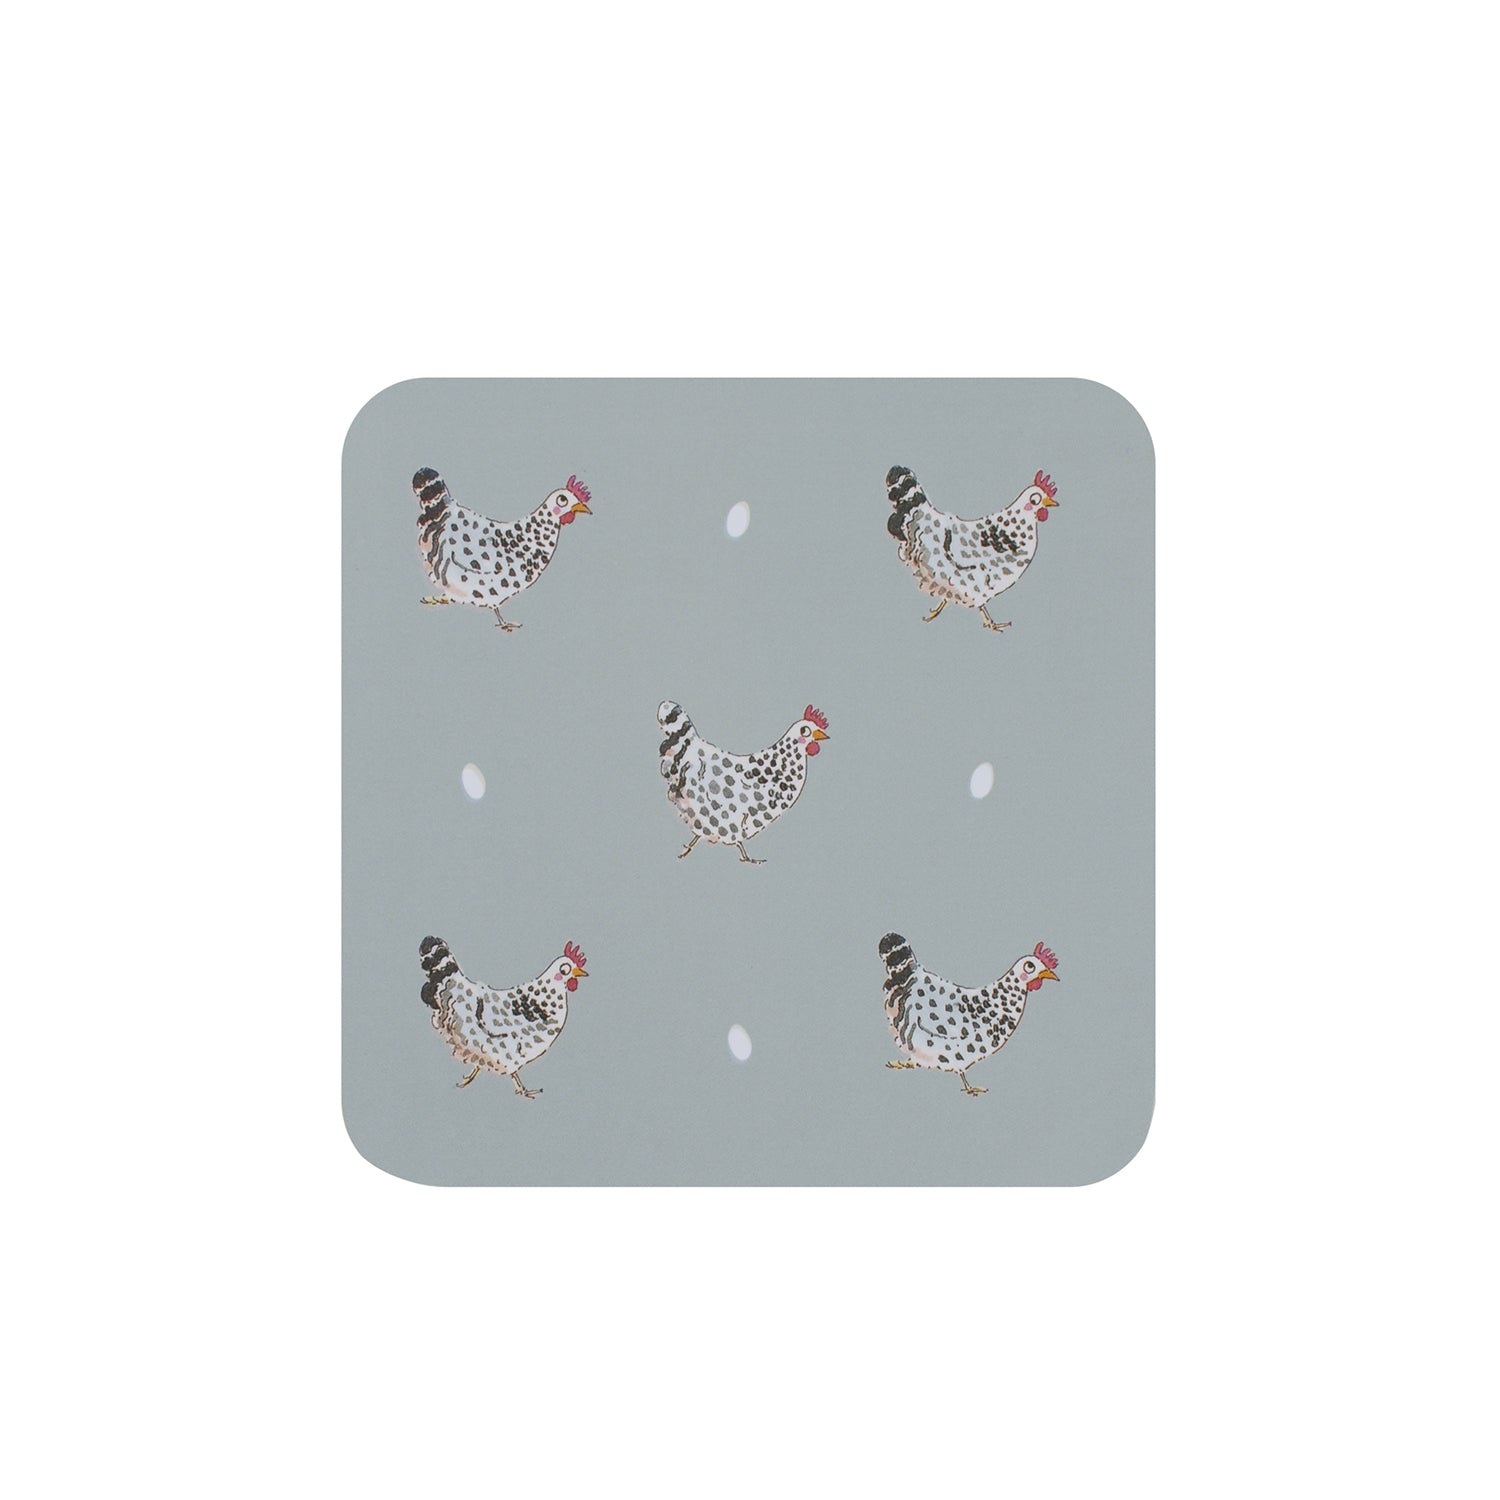 Chicken Coasters (Set of 4)